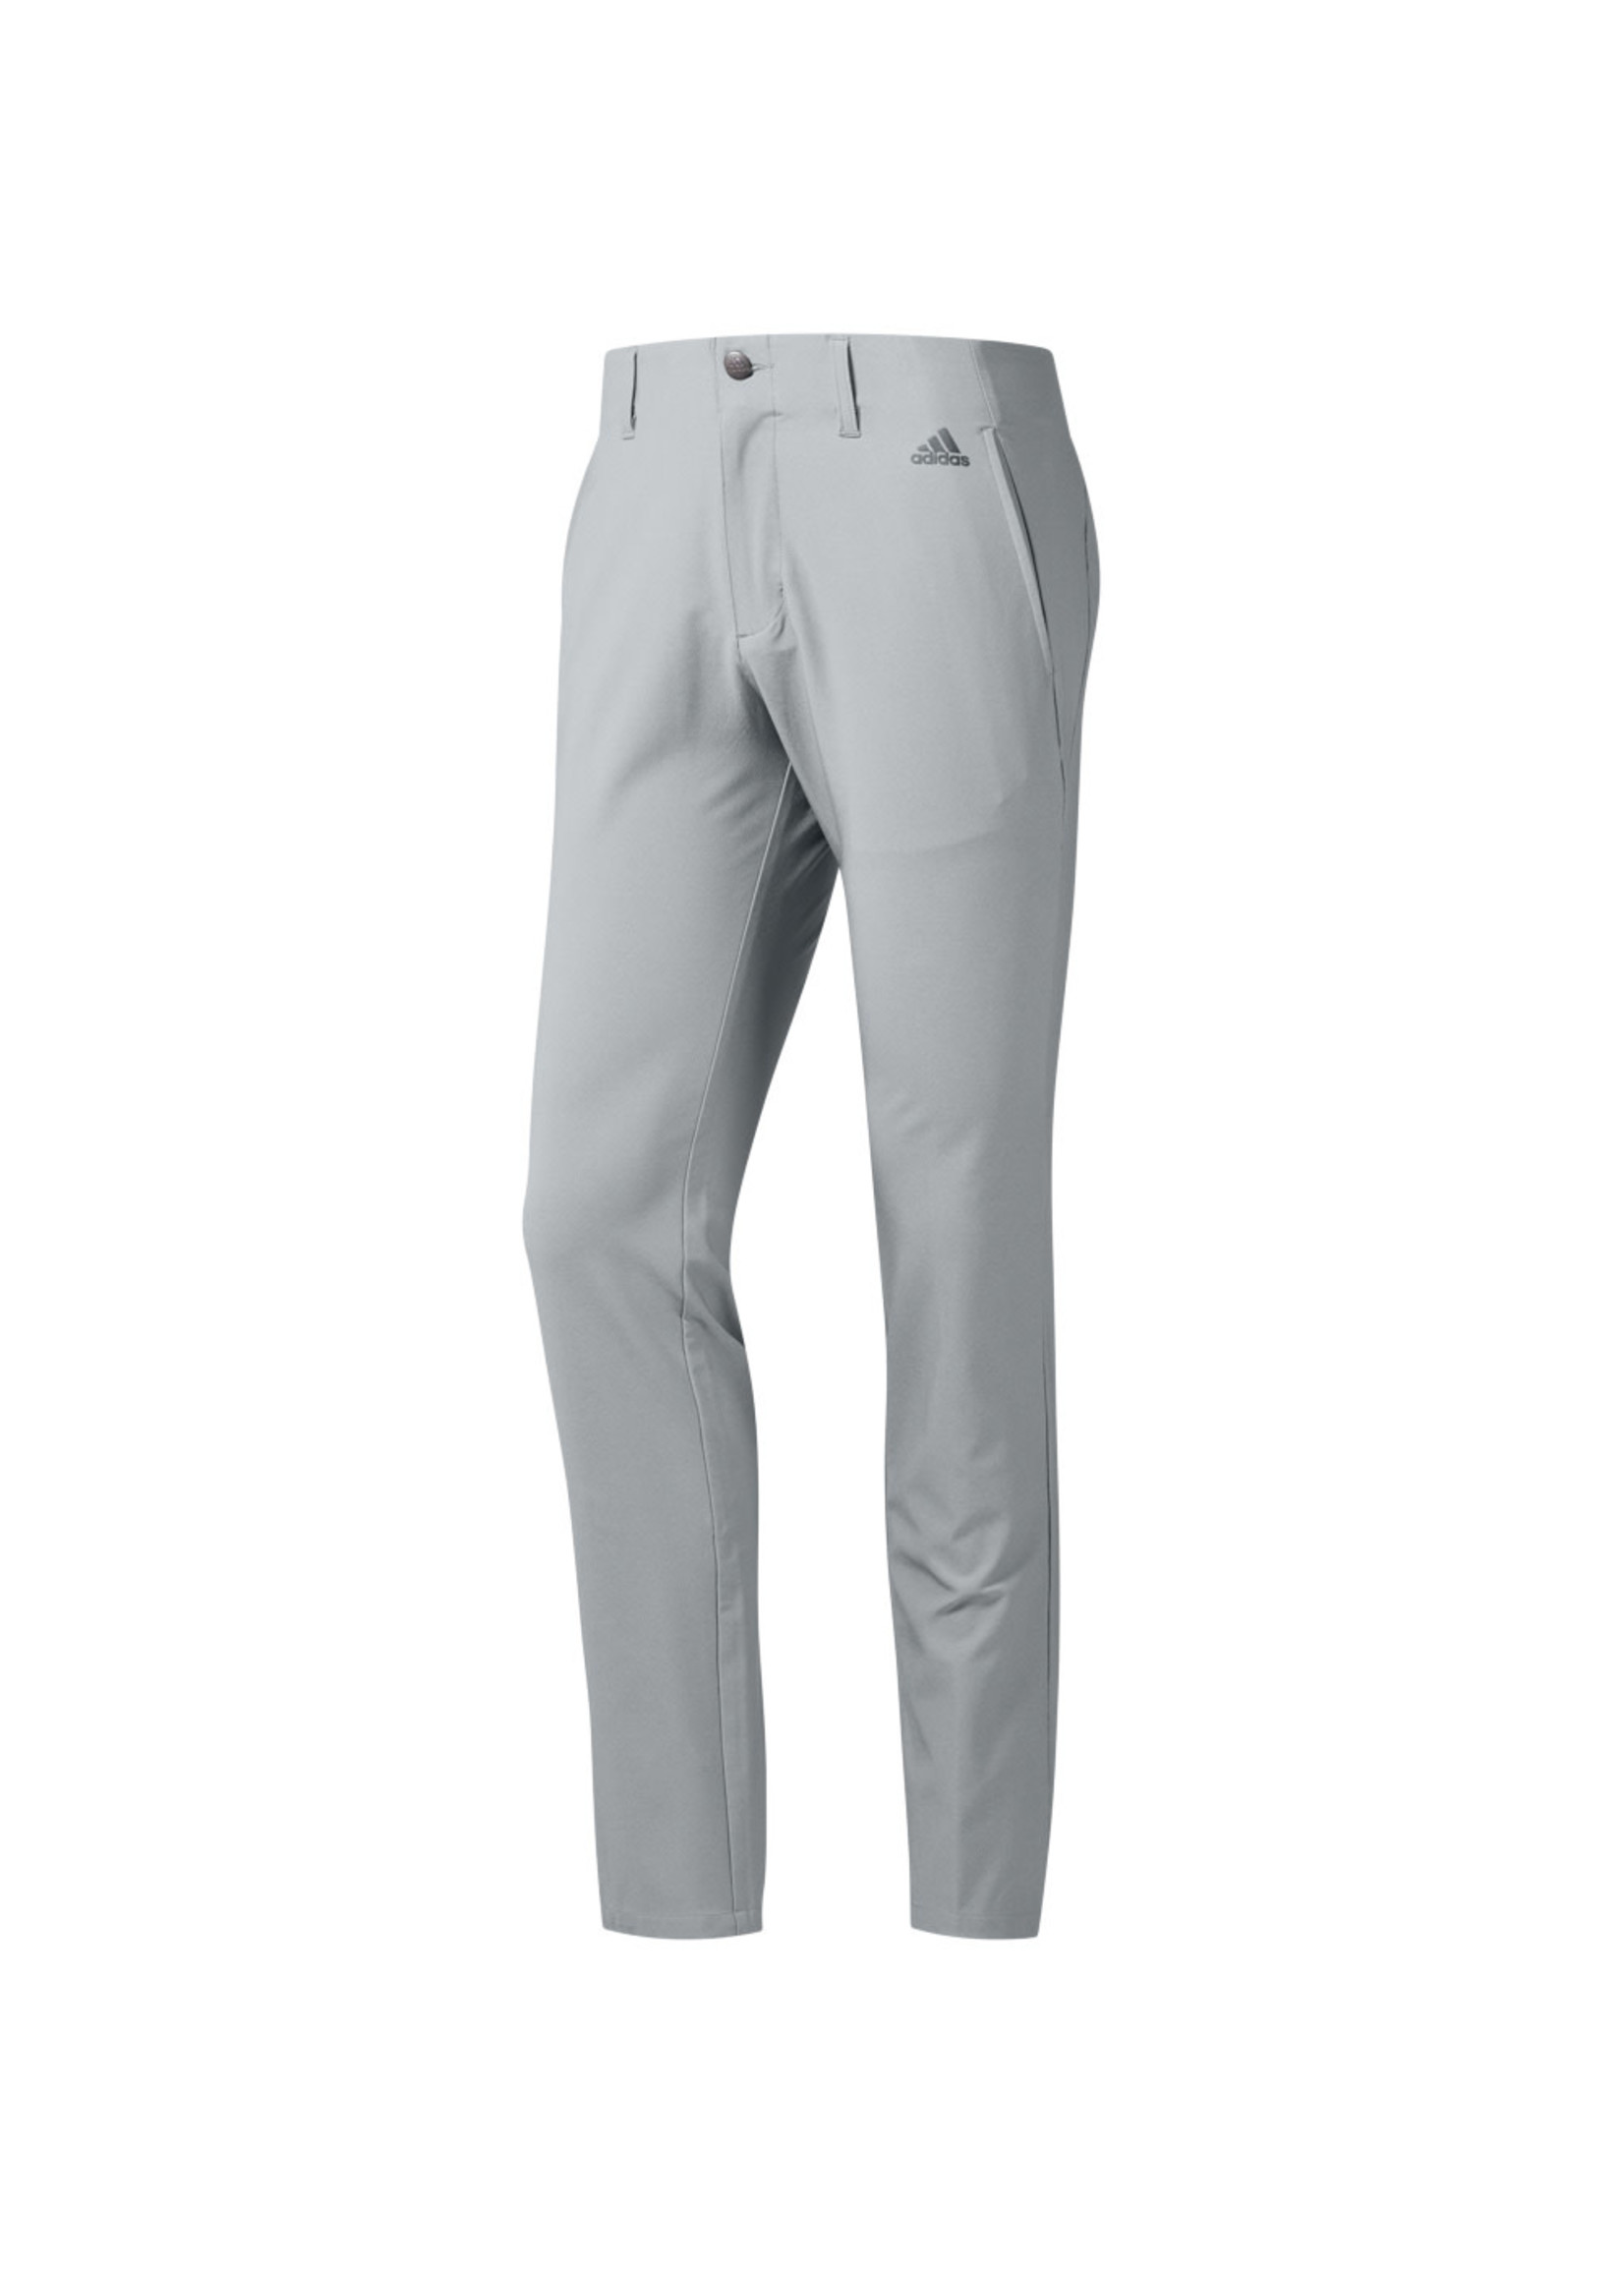 Adidas Adidas Mens Ultimate365 3 Stripe Tapered Golf Trouser, Grey